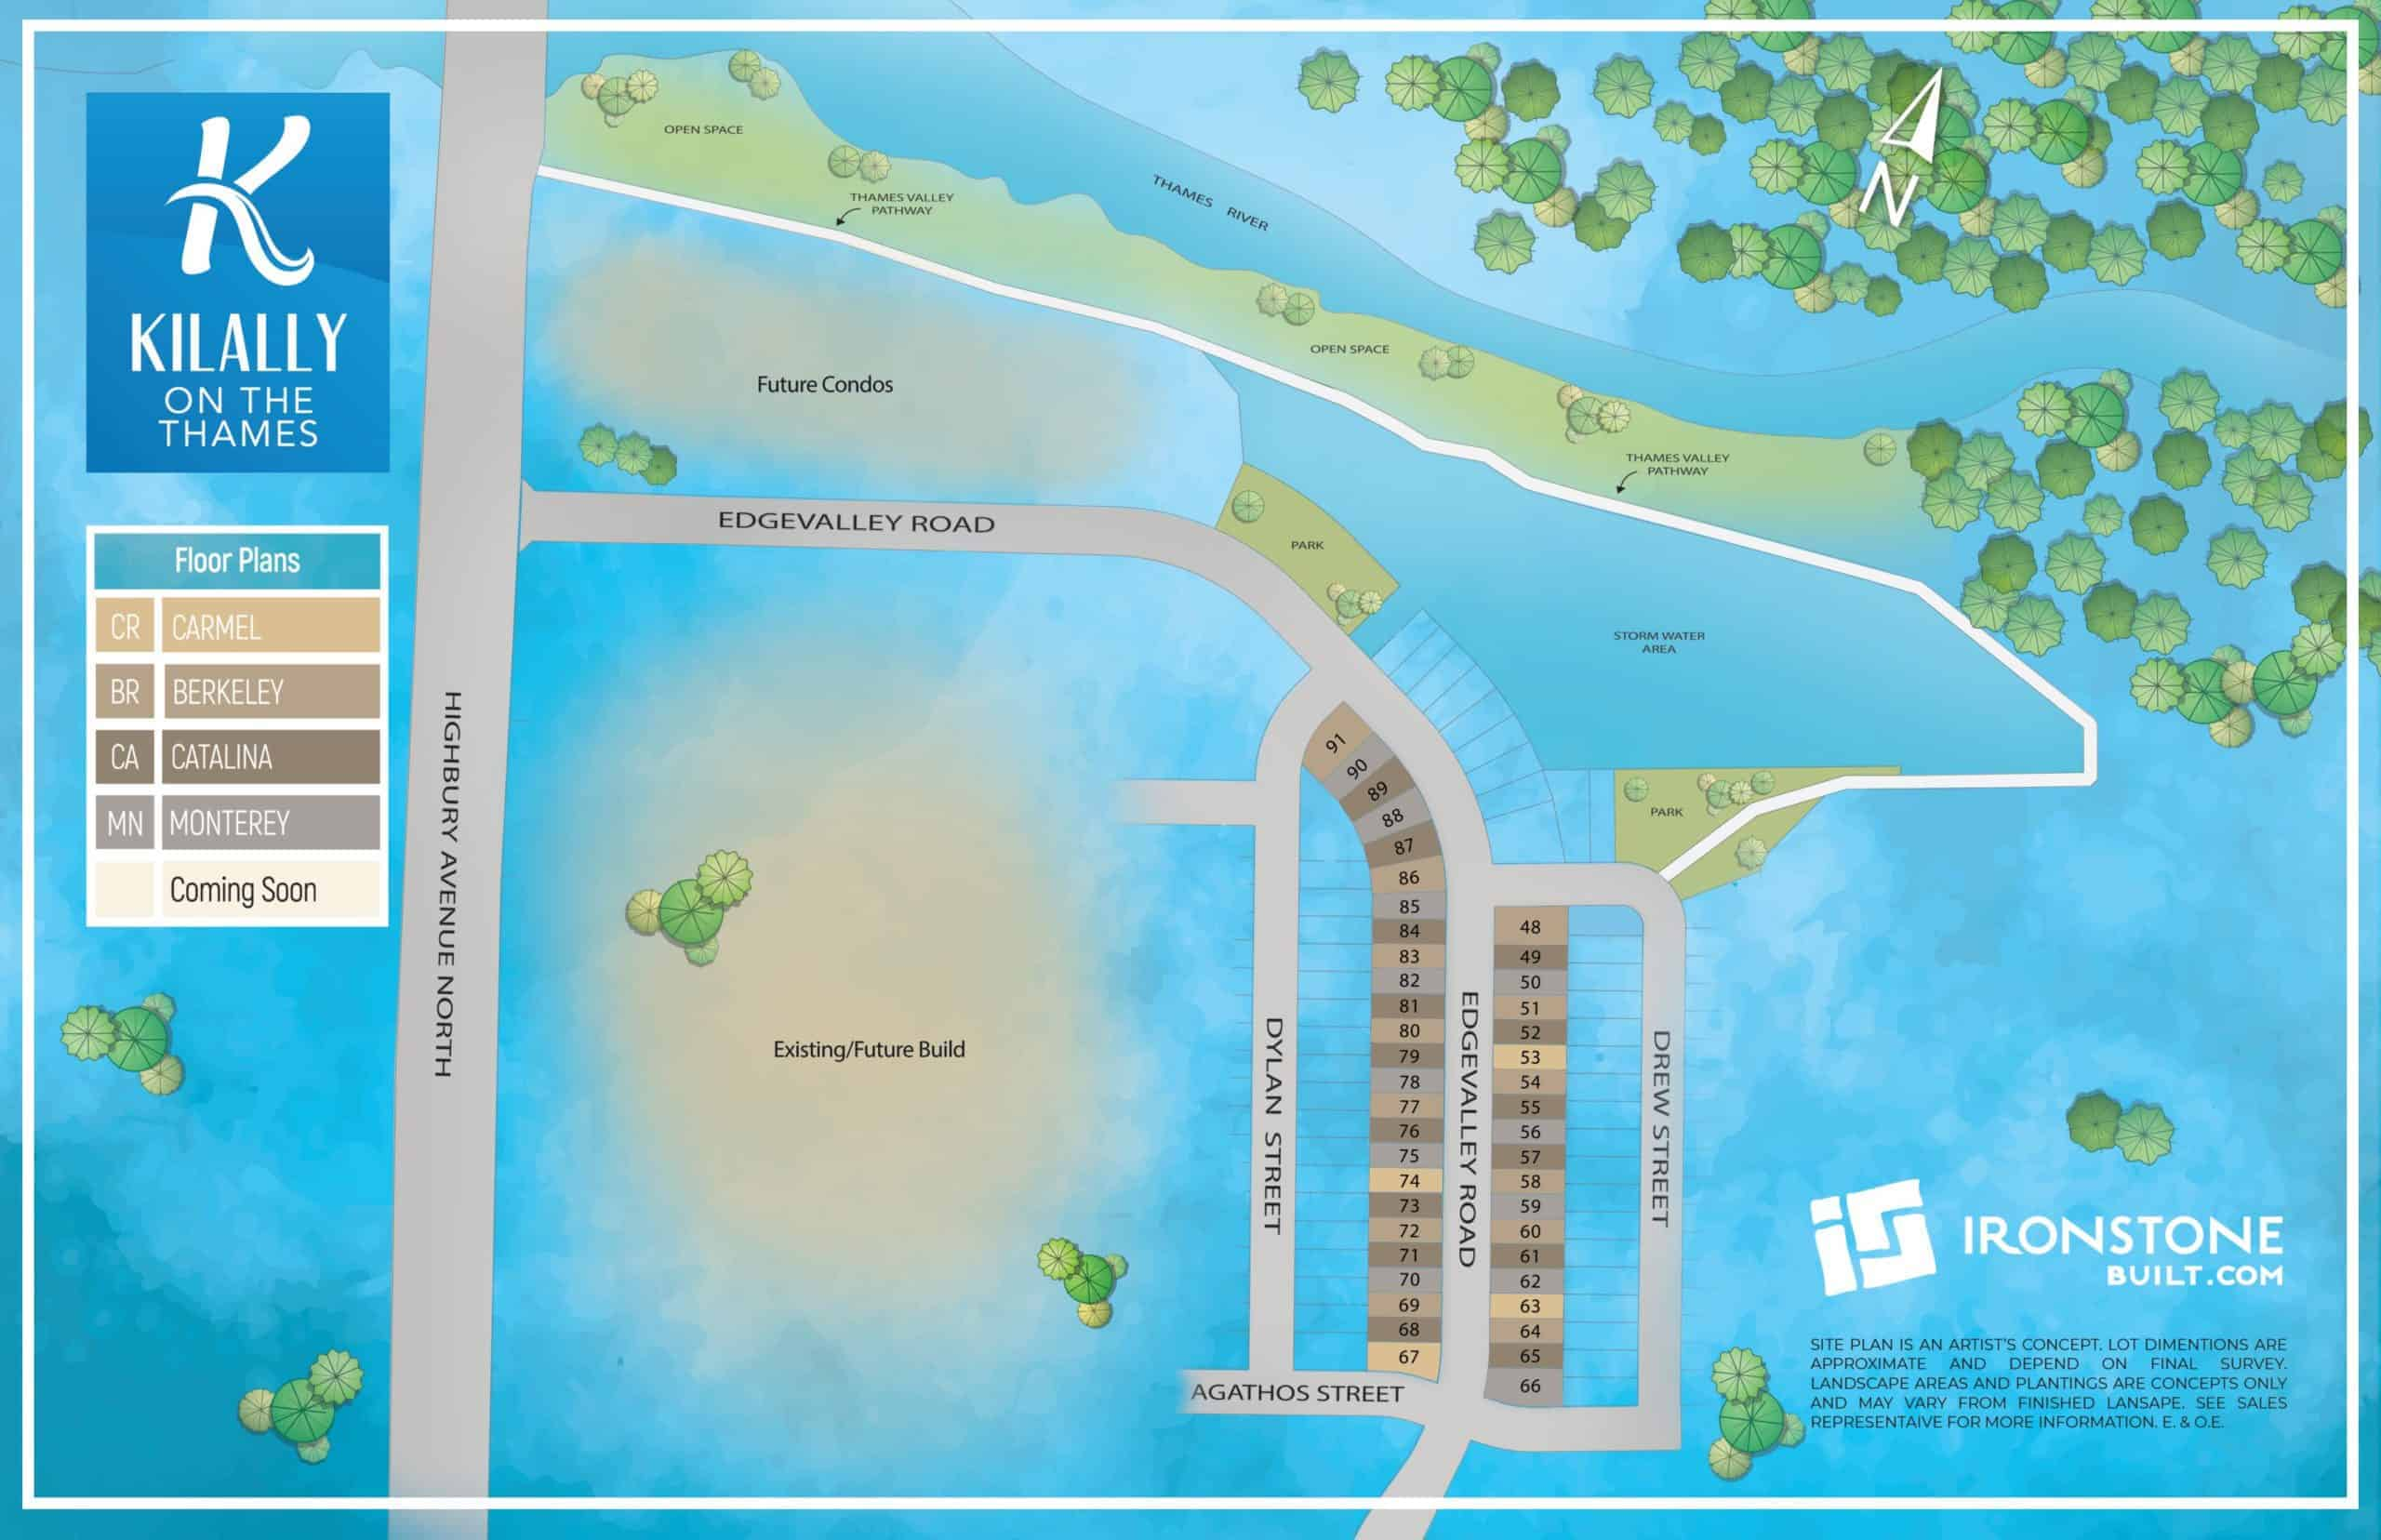 kilally on the thames site map